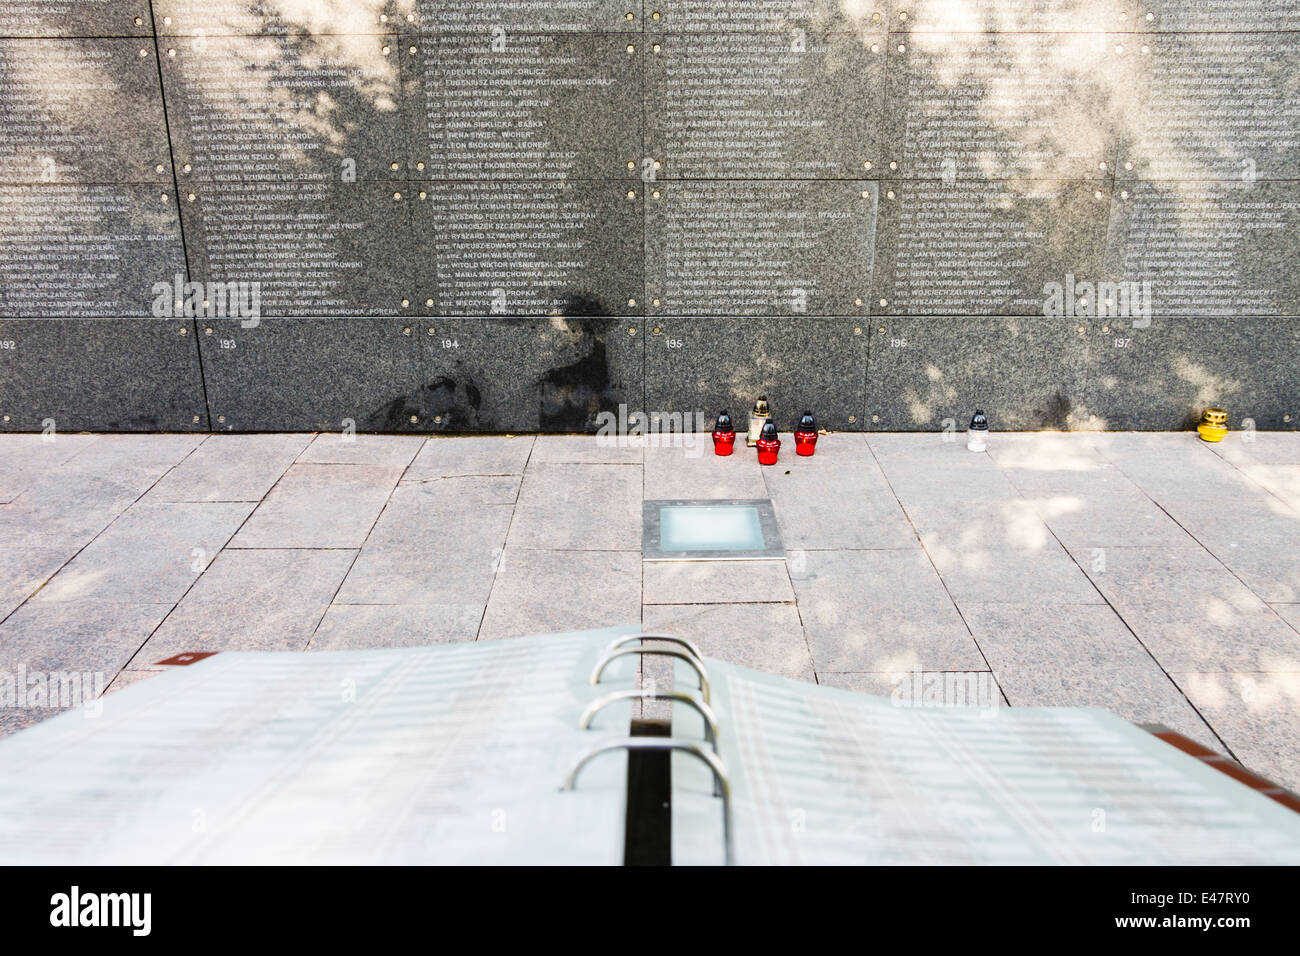 Fallen names list. Warsaw uprising museum on Warsaw uprising Remembrance Day. - Stock Image